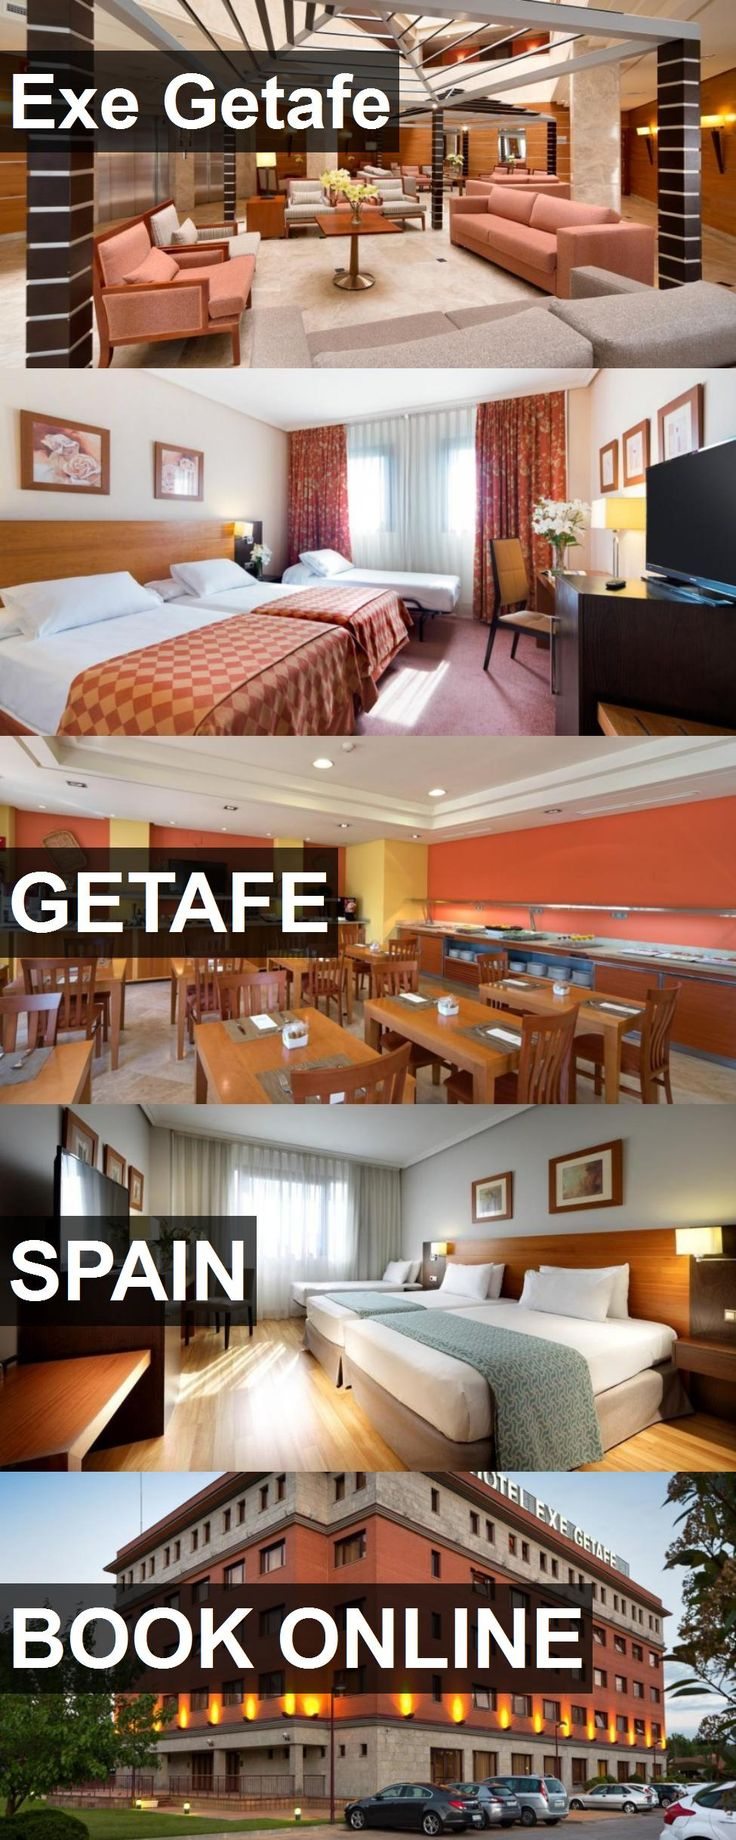 Hotel Exe Getafe in Getafe, Spain. For more information, photos, reviews and best prices please follow the link. #Spain #Getafe #travel #vacation #hotel